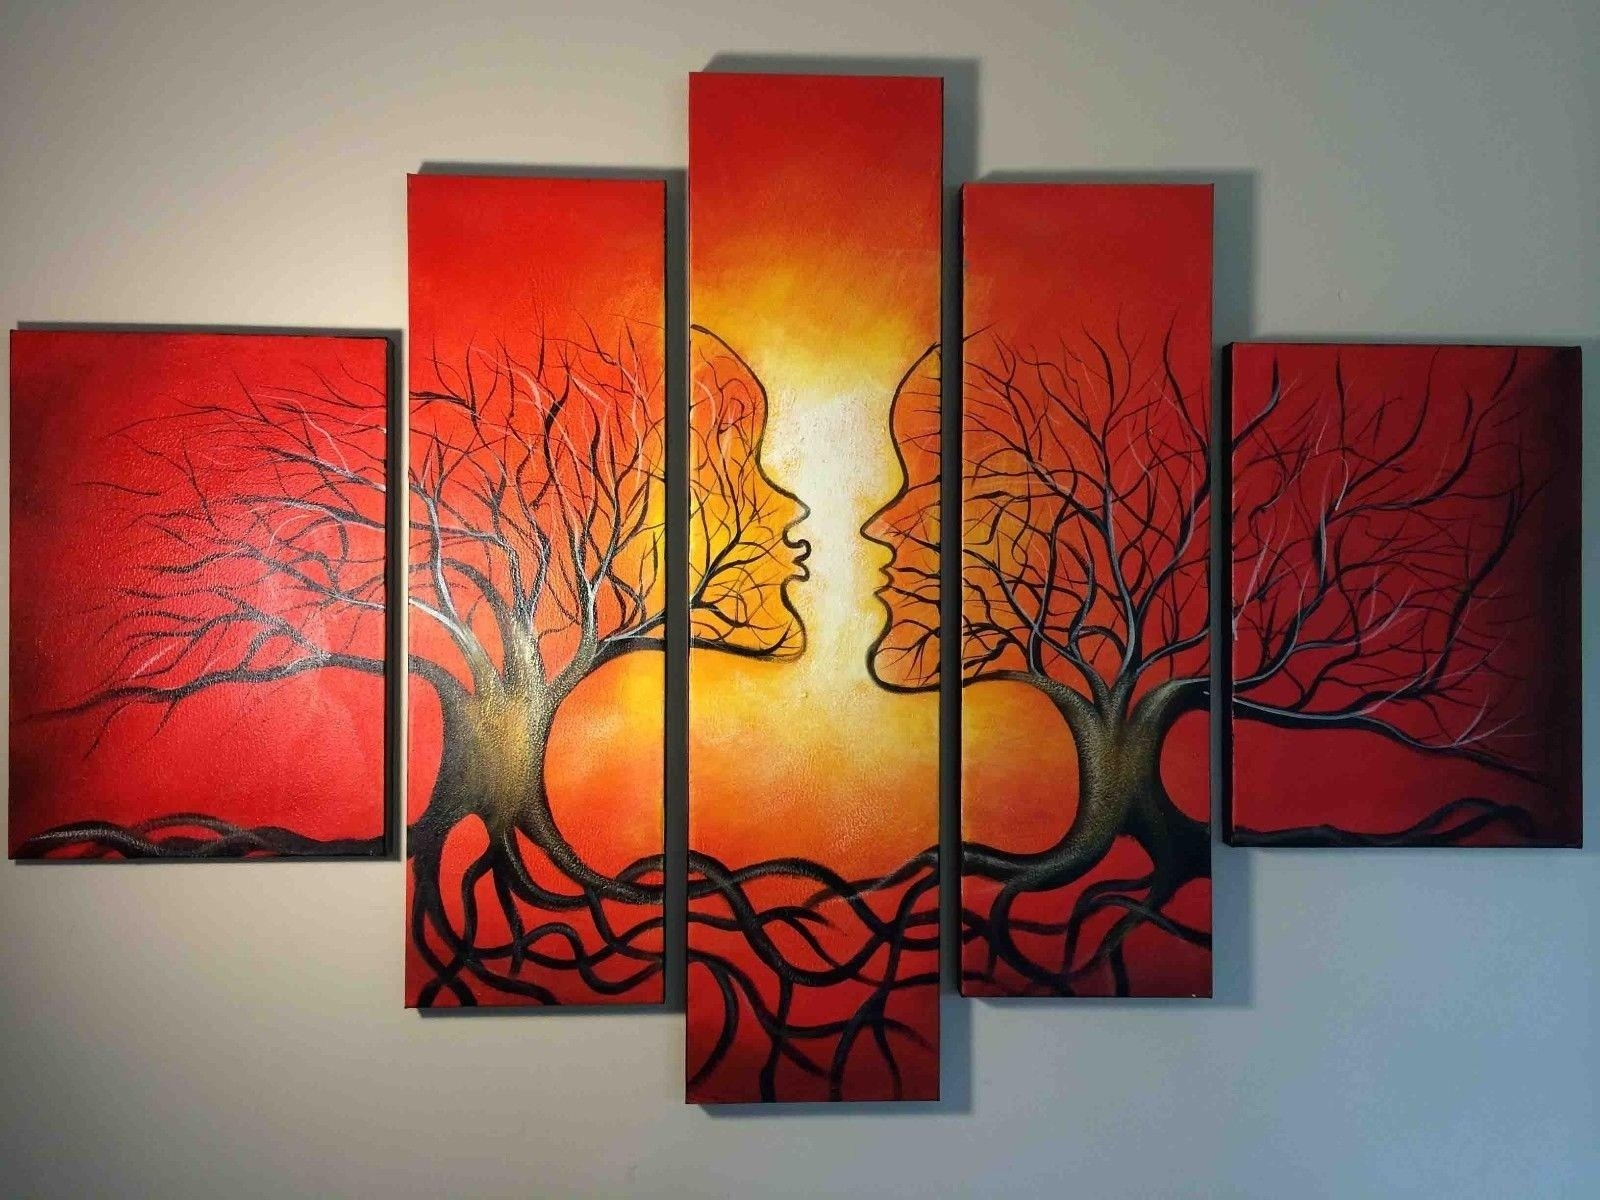 Wall Art Designs: Abstract Wall Art Red Abstract Oil Painting Throughout Newest Framed Abstract Wall Art (View 9 of 20)